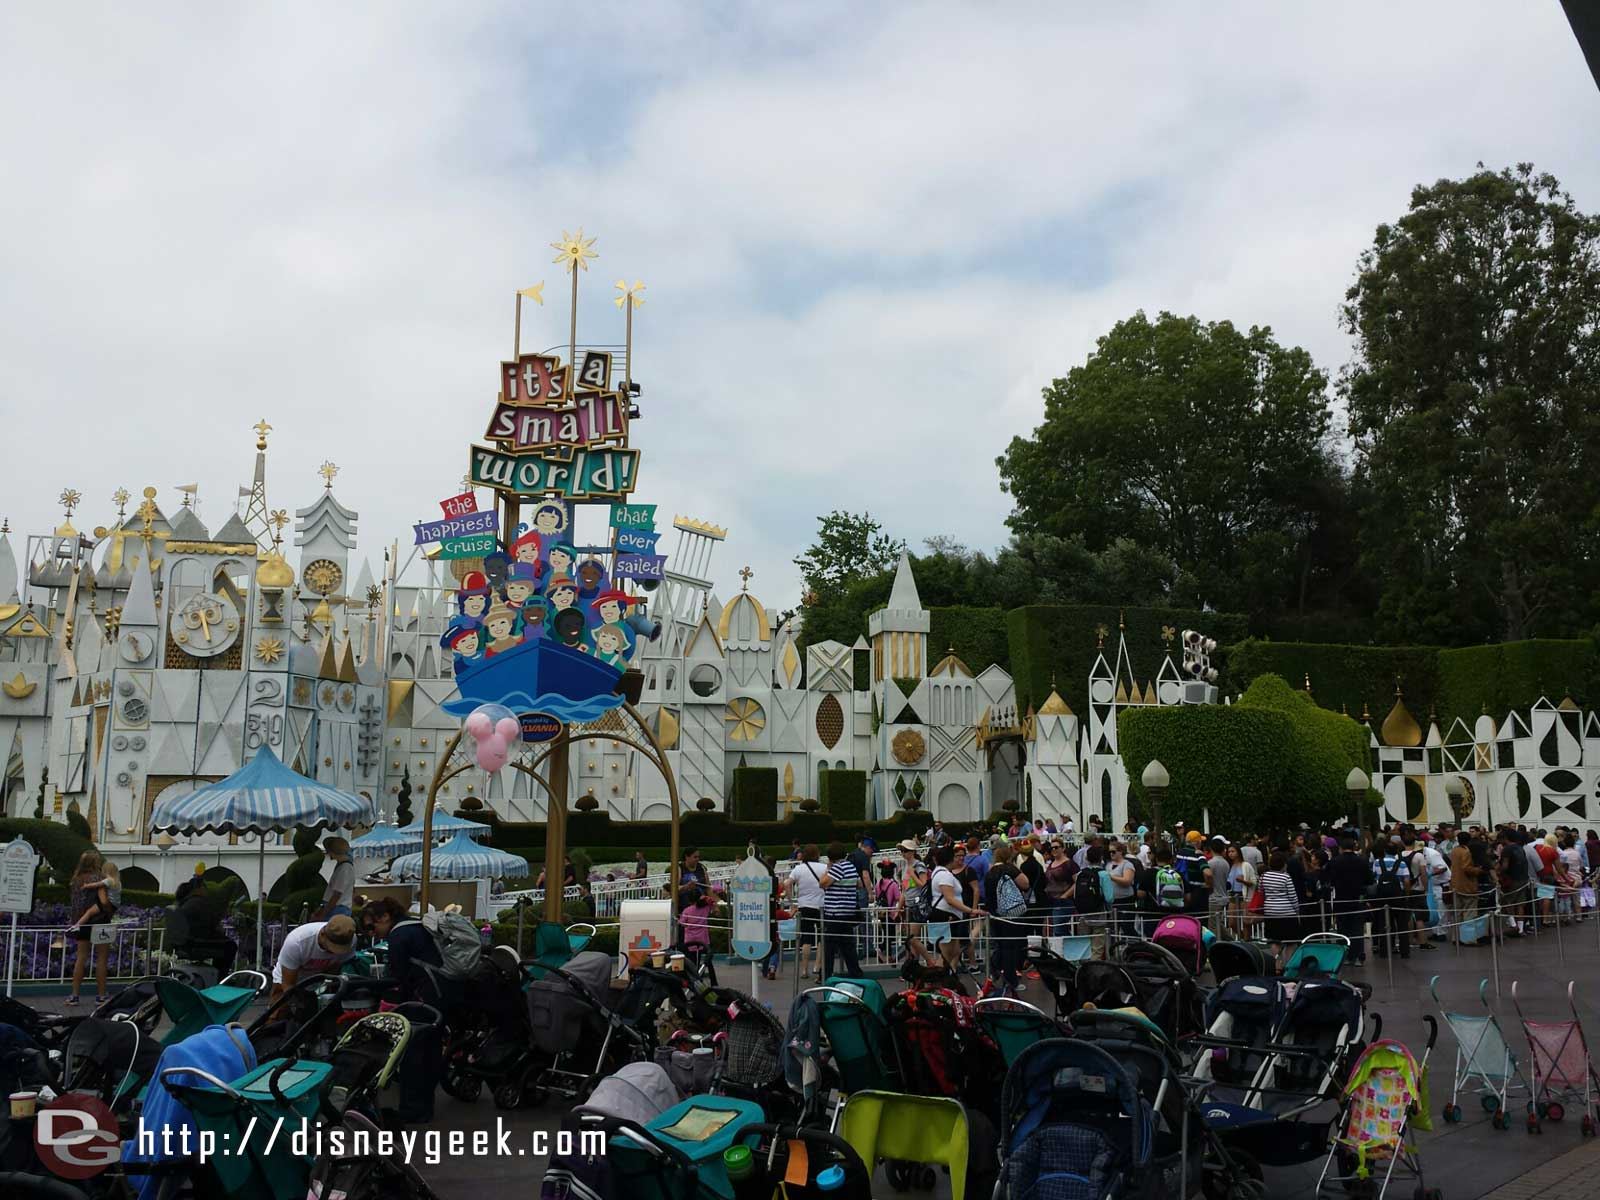 Small World has reopened and has a line using the extended queue